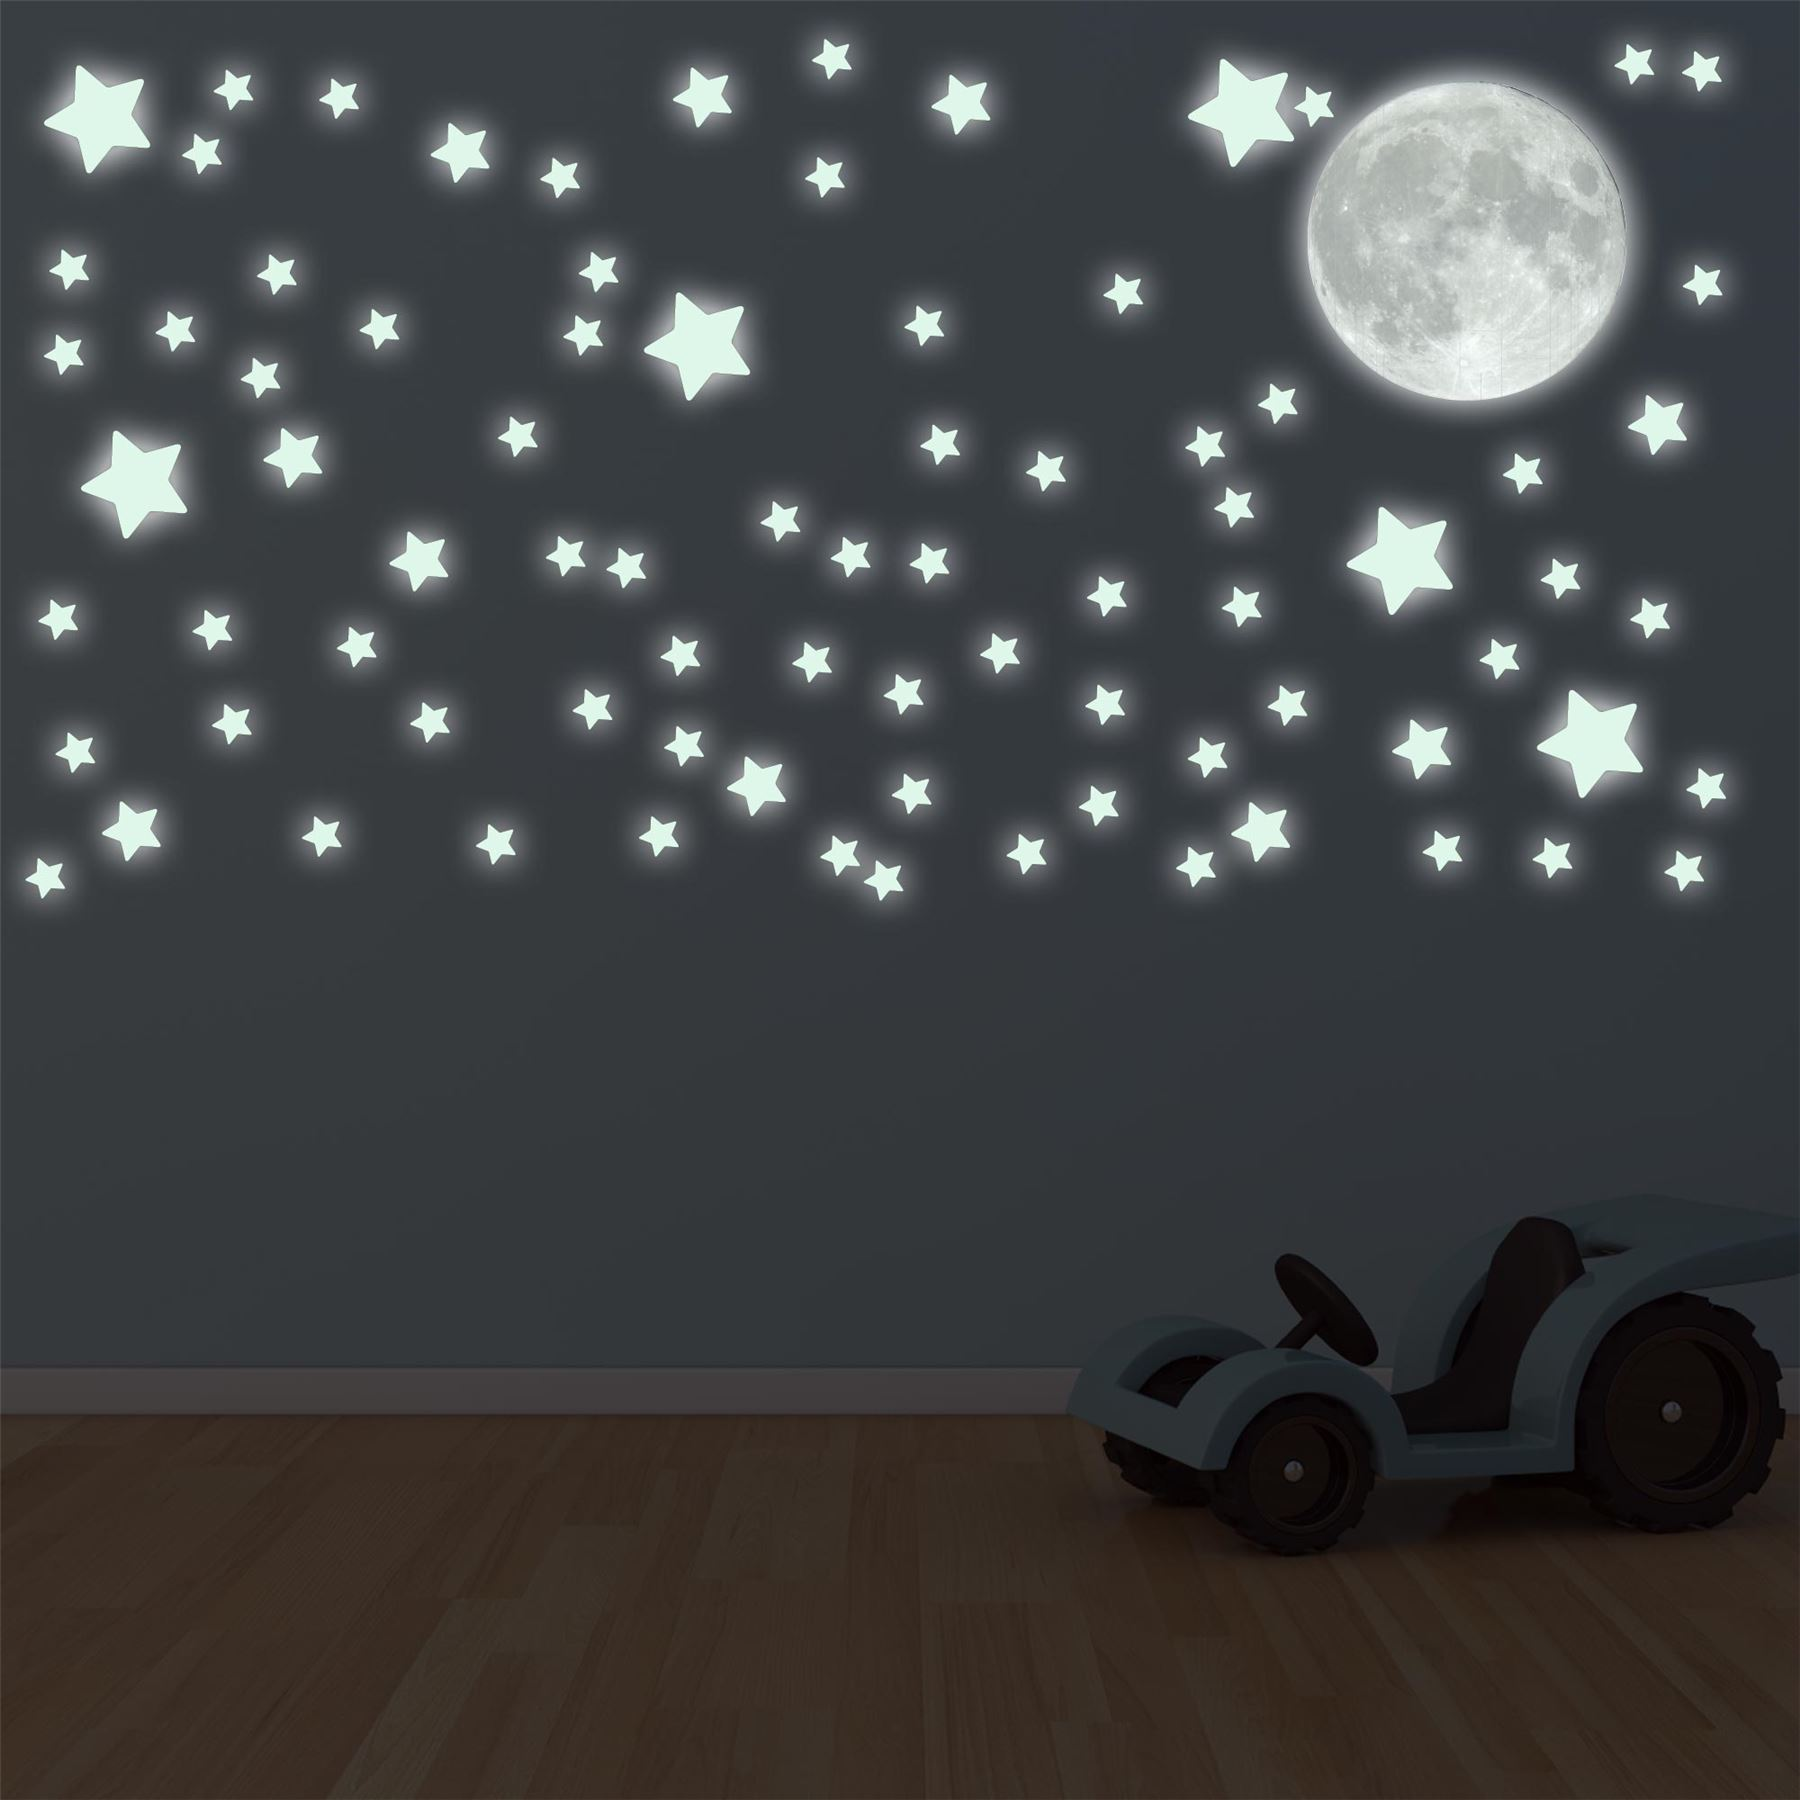 glow in the dark moon and stars wall sticker decal ebay crescent night light luna crescent glow in the dark moon